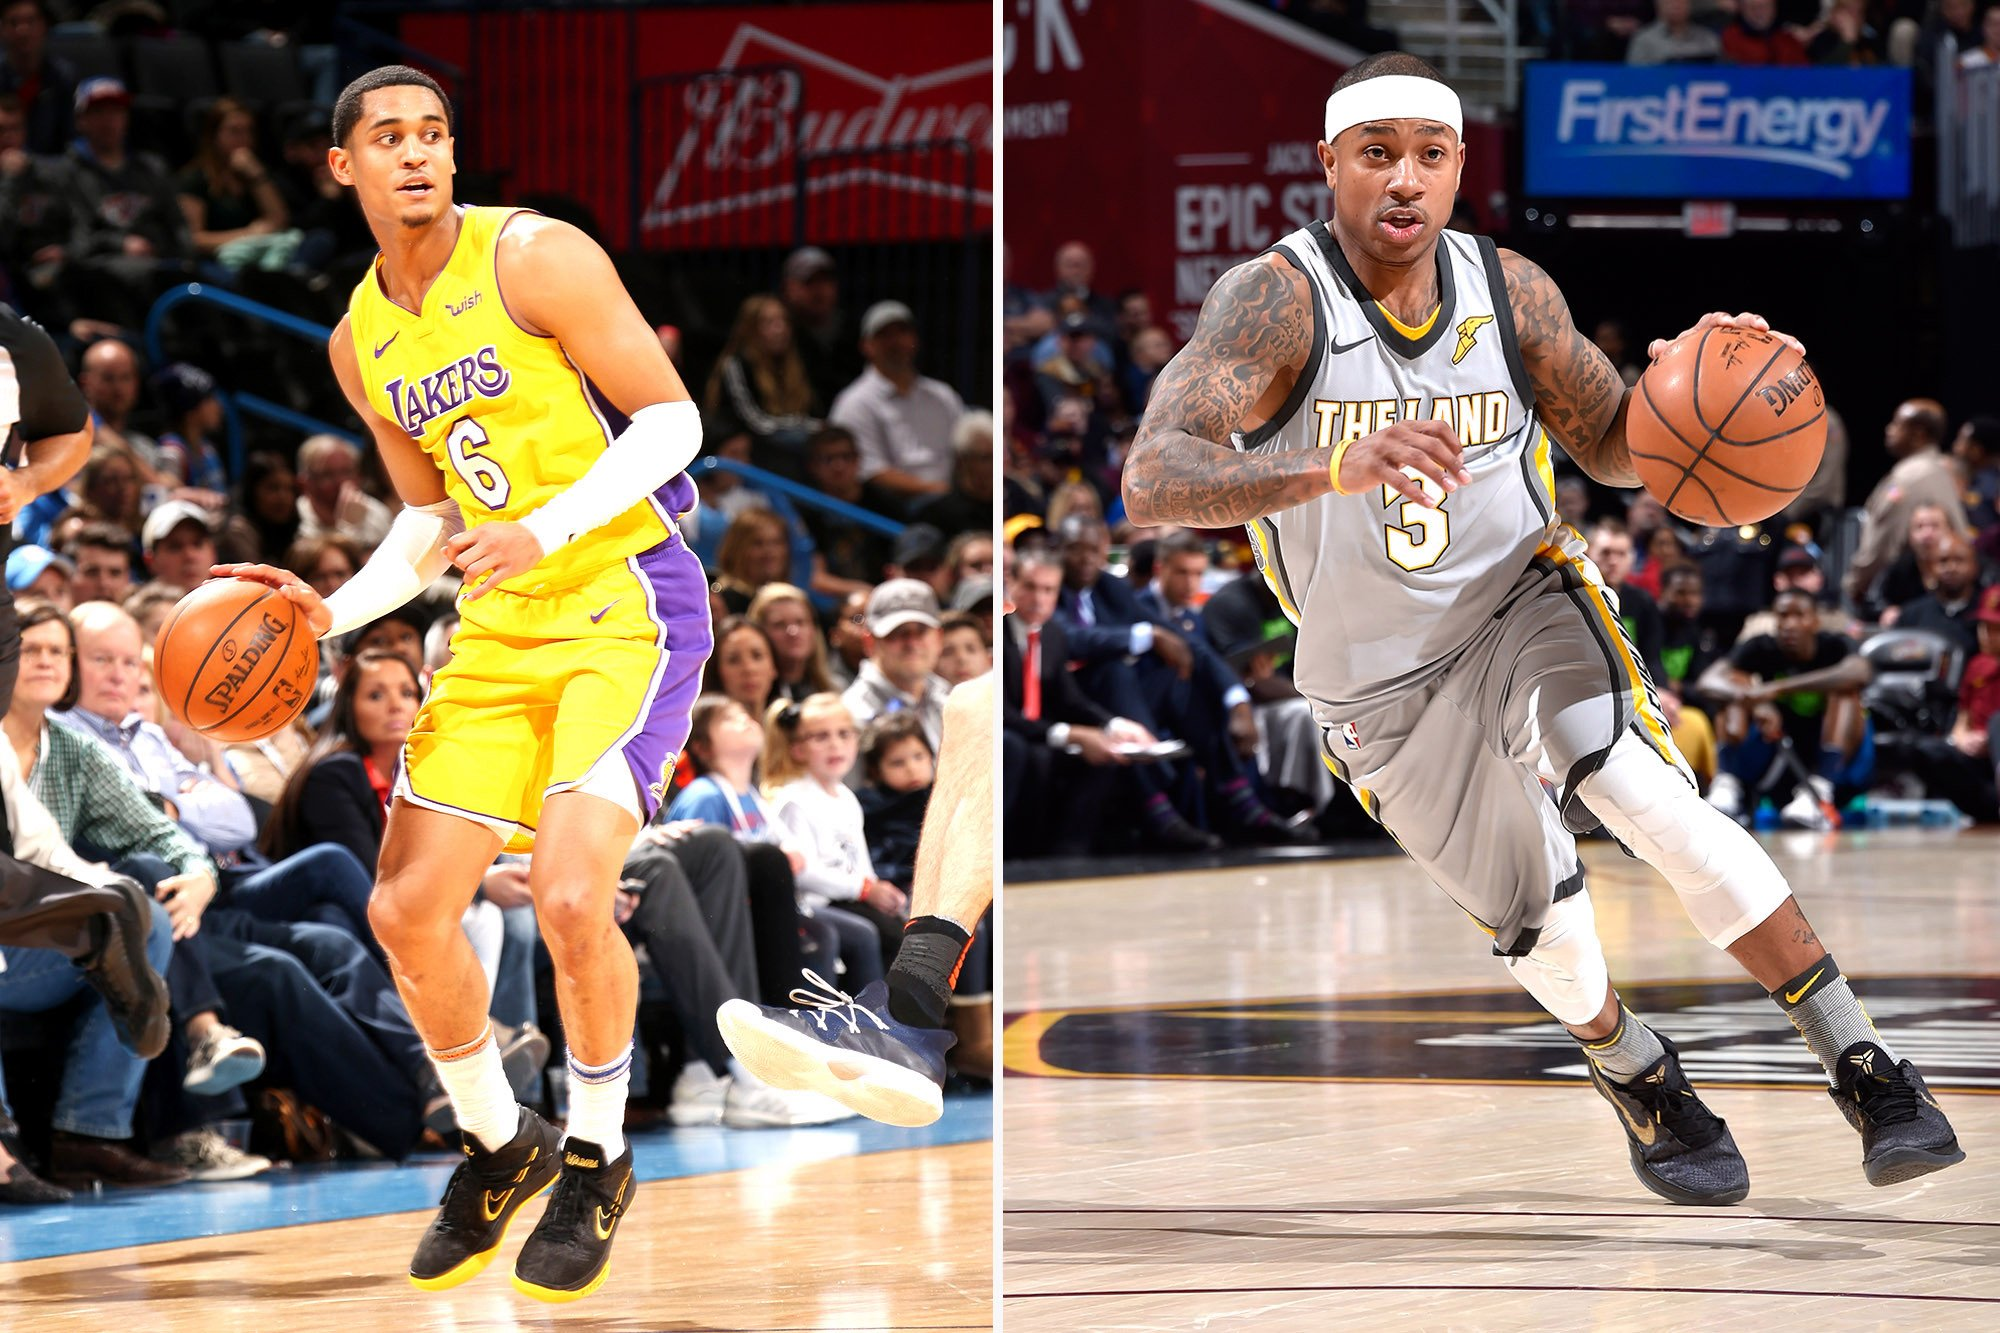 Cavaliers trade Isaiah Thomas to Lakers in blockbuster